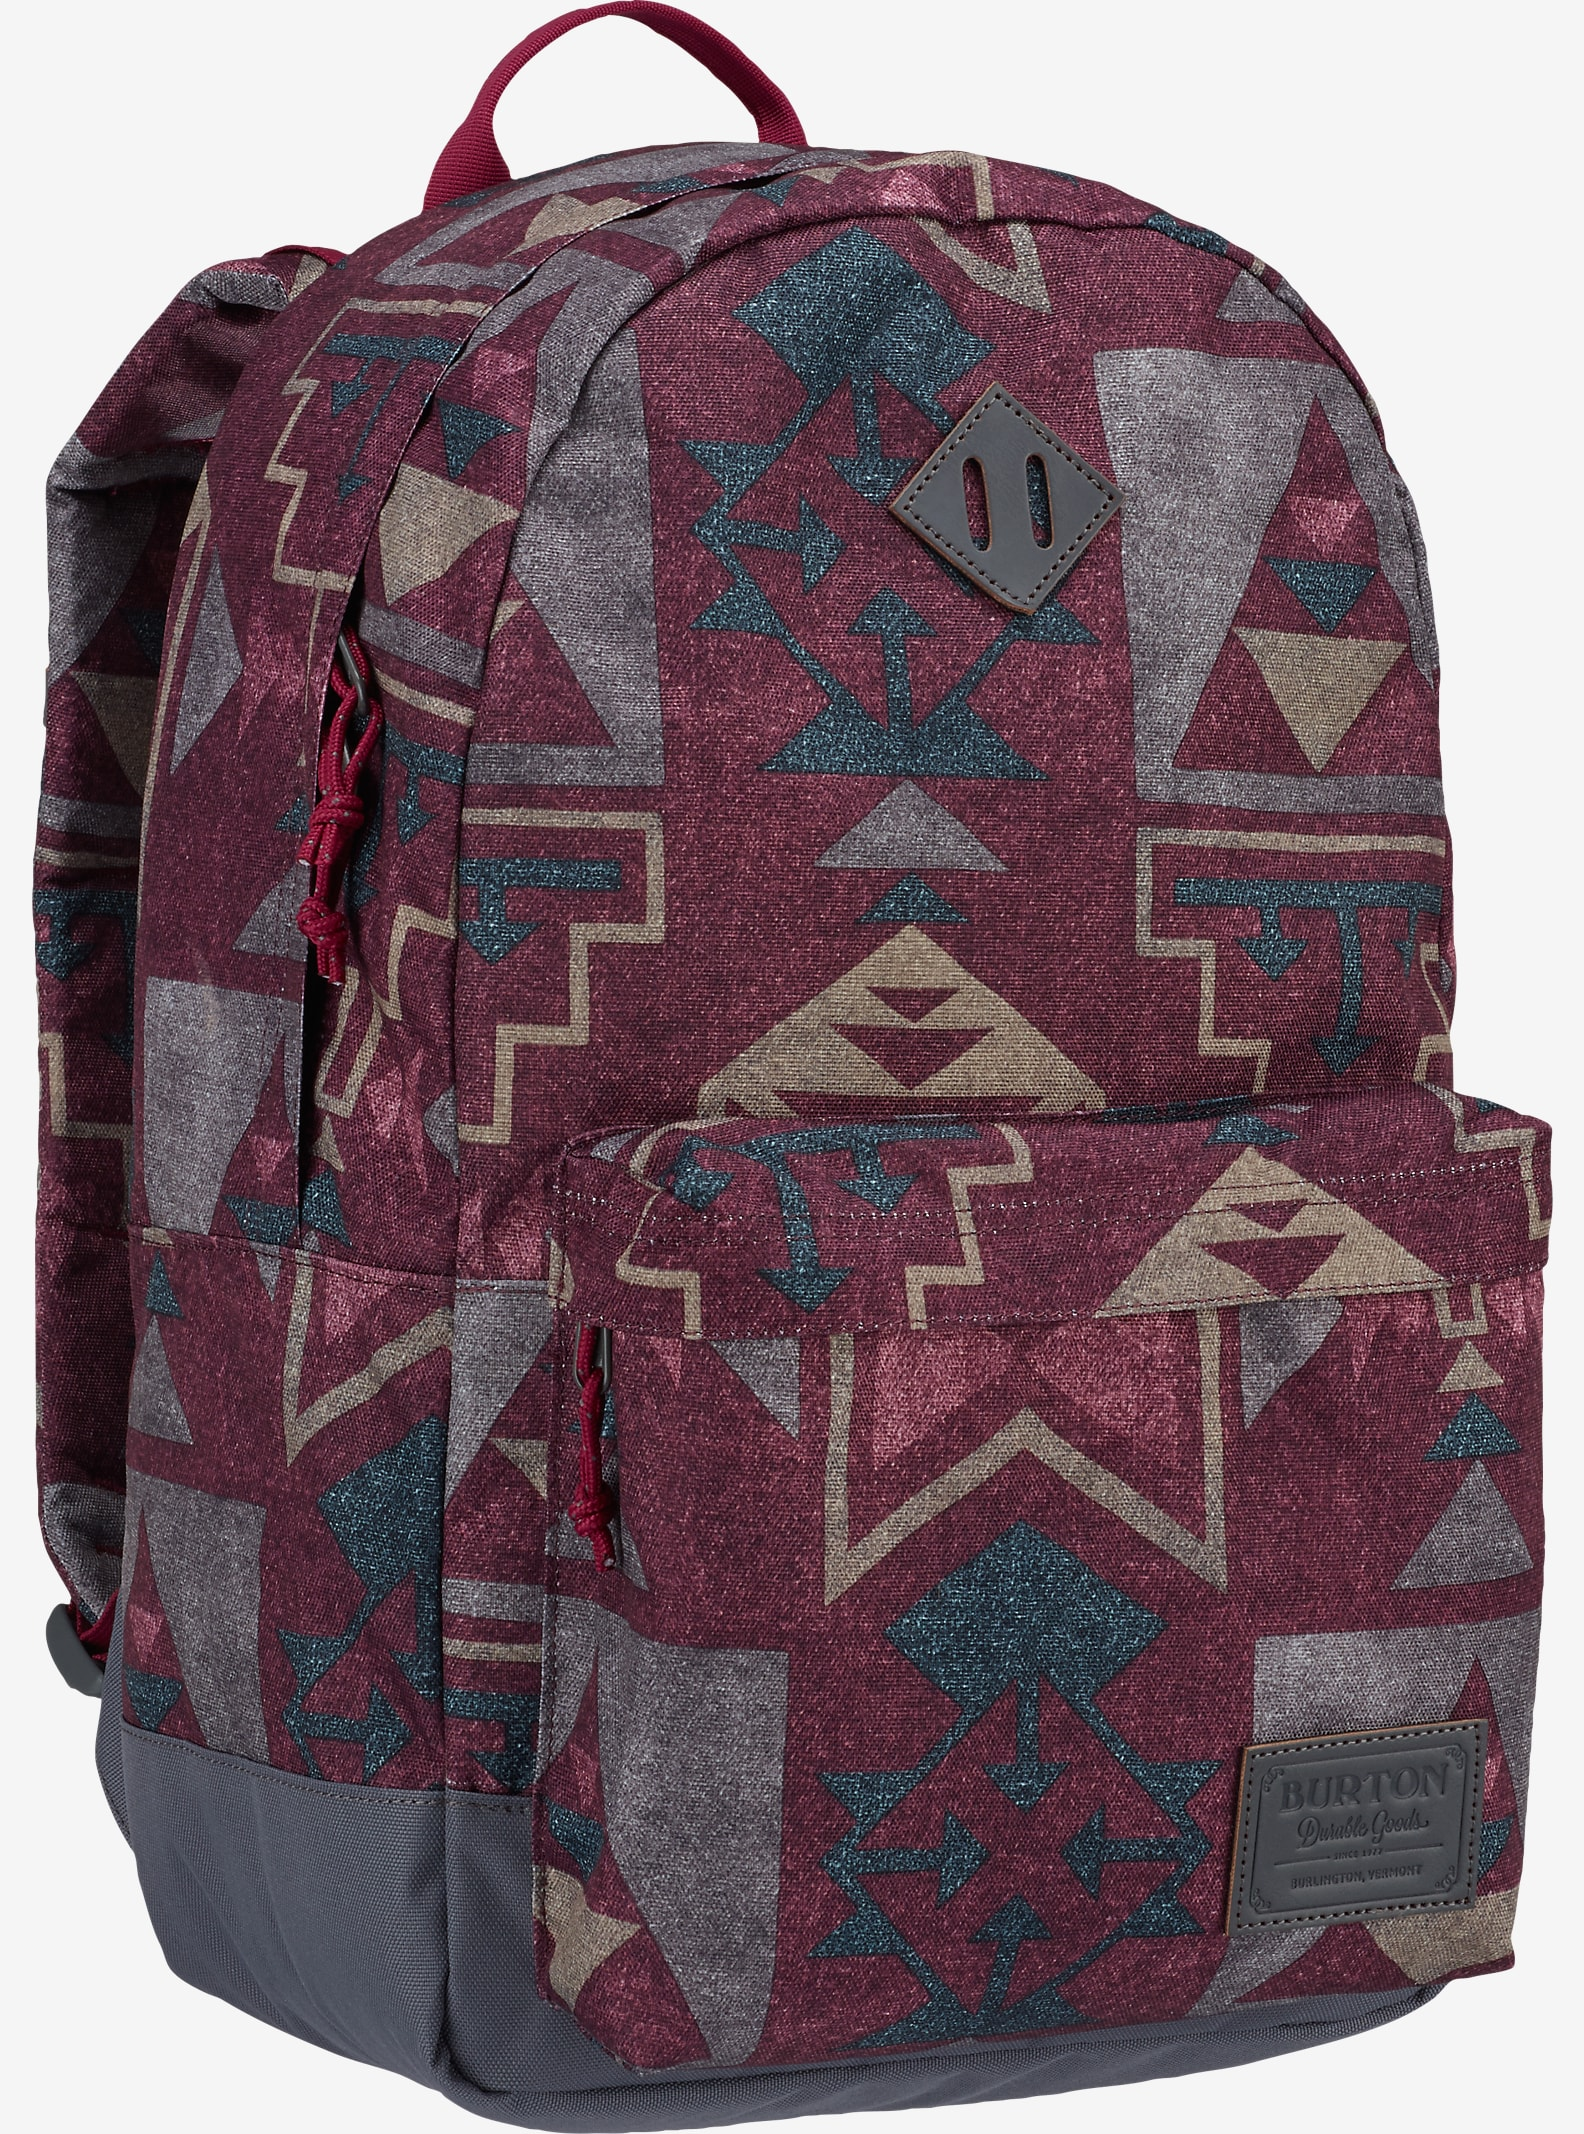 Burton Kettle Backpack shown in Canyon Print